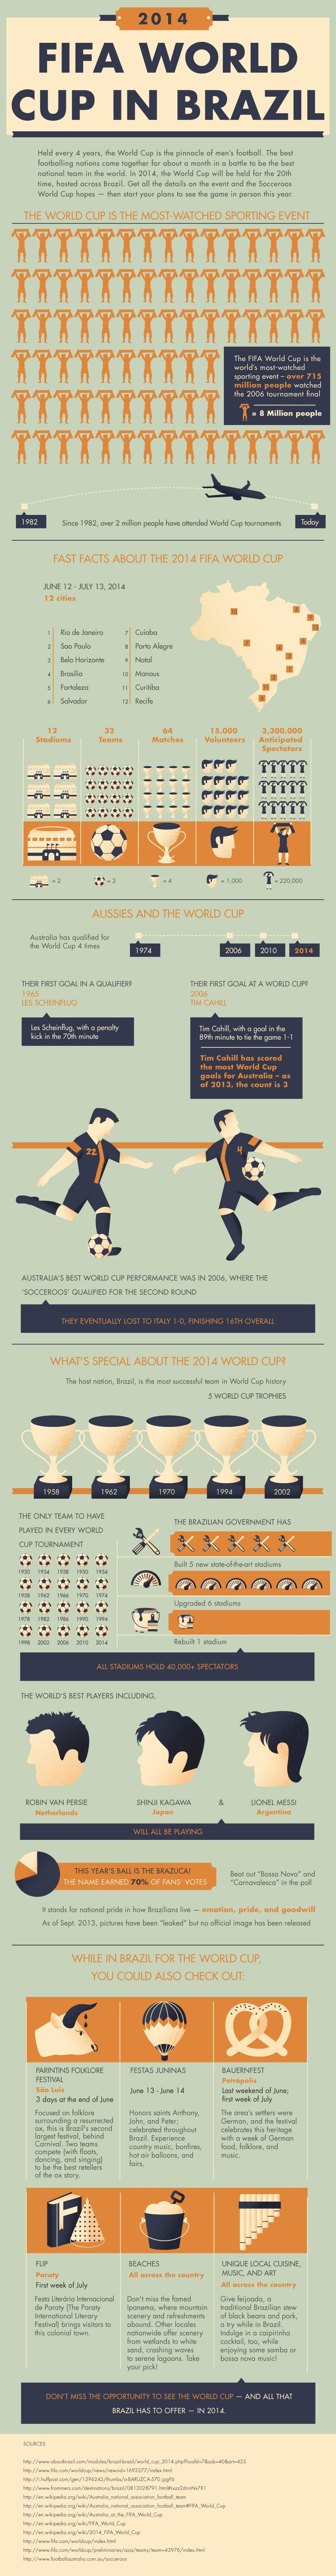 fifa-world-cup-brazil-infographic-1